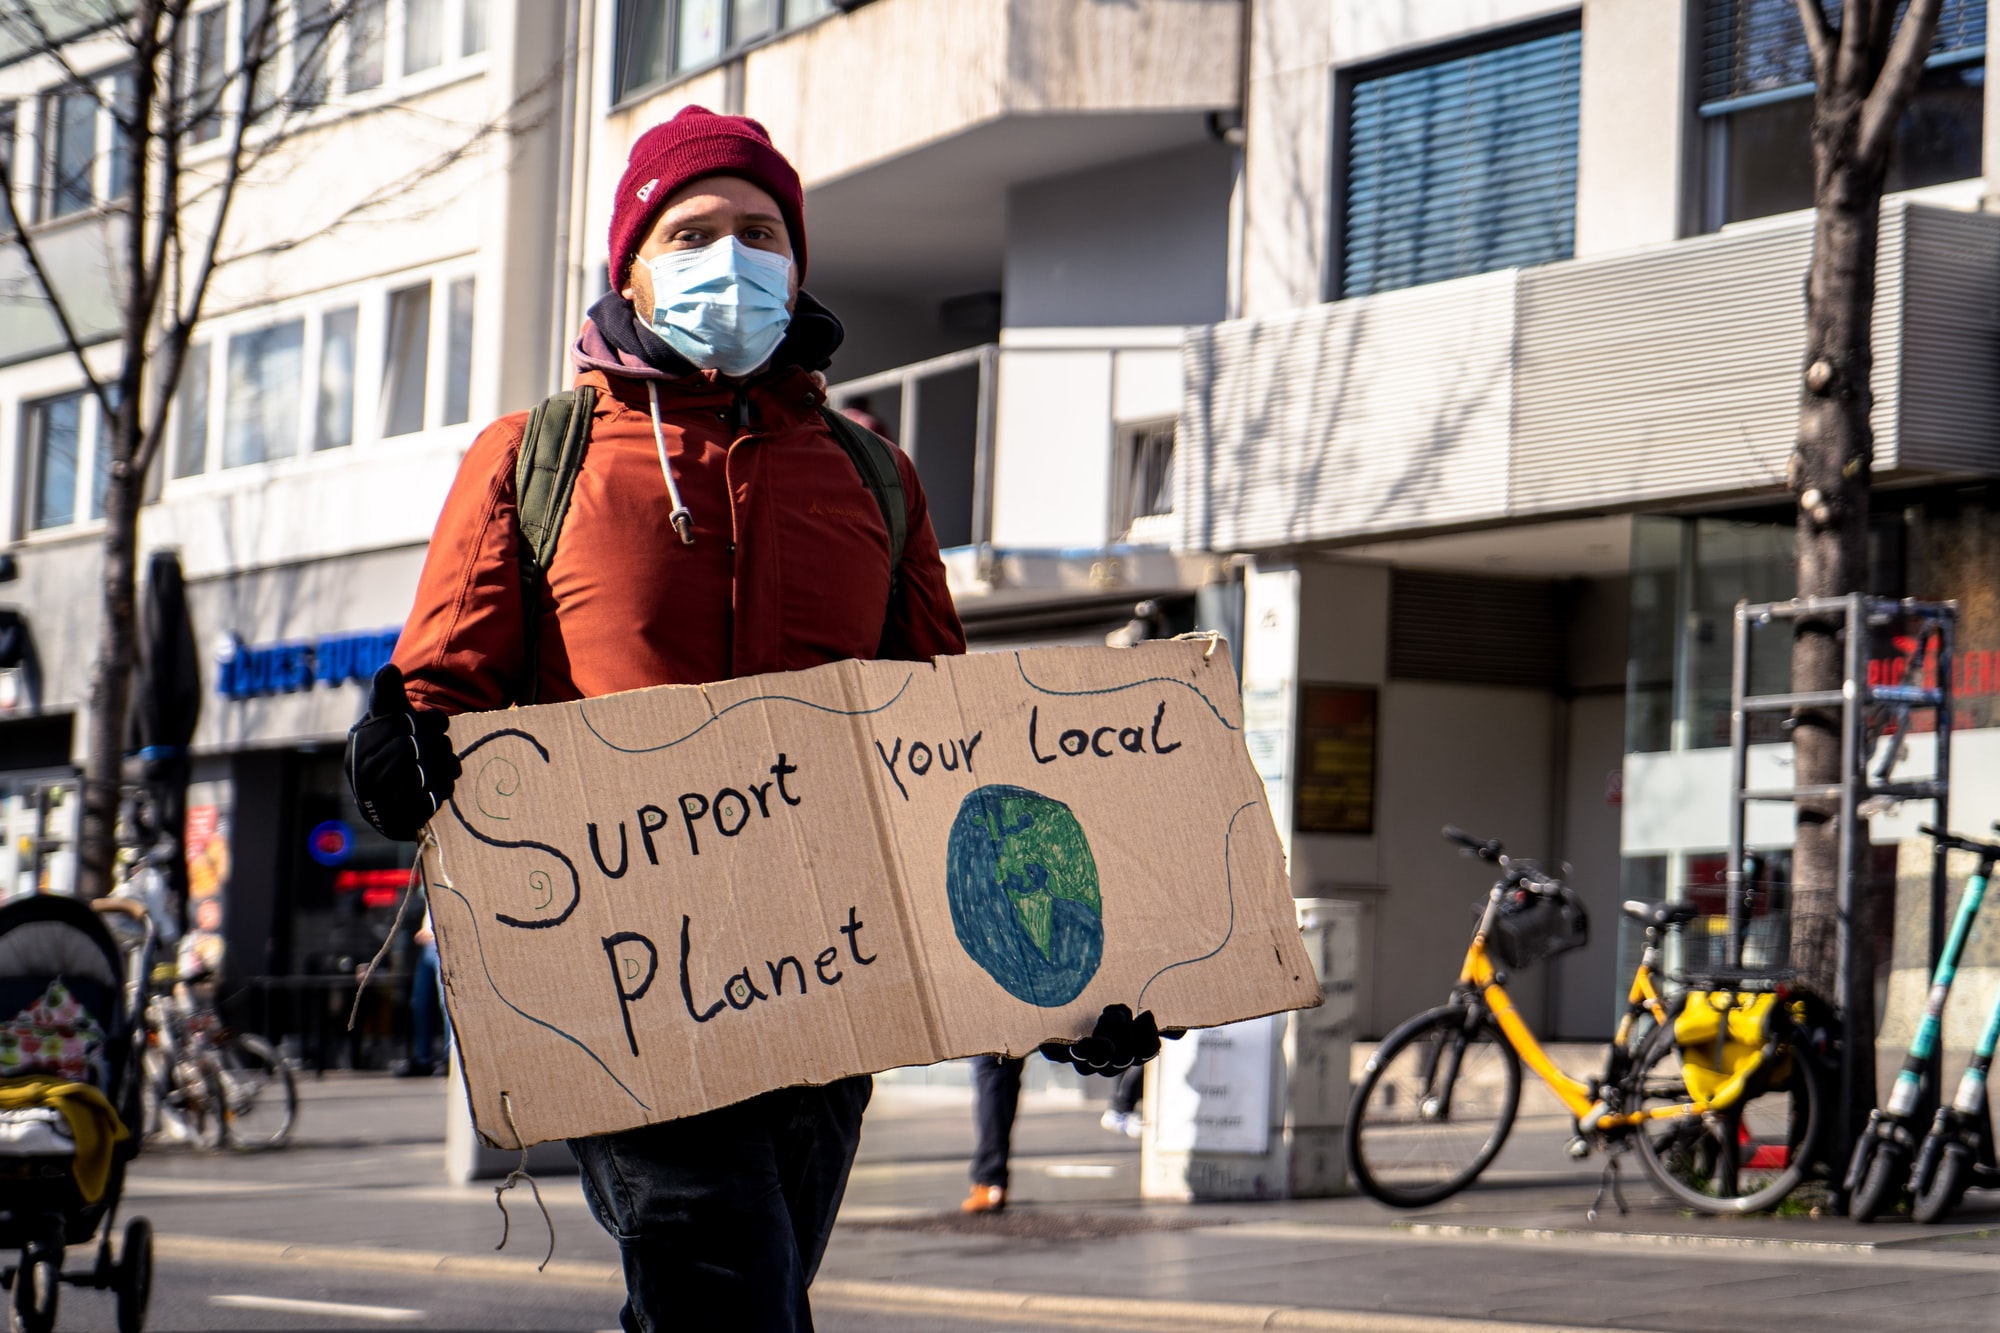 Support your local Planet!  - Fridays for Future Bonn, 2021-03-19